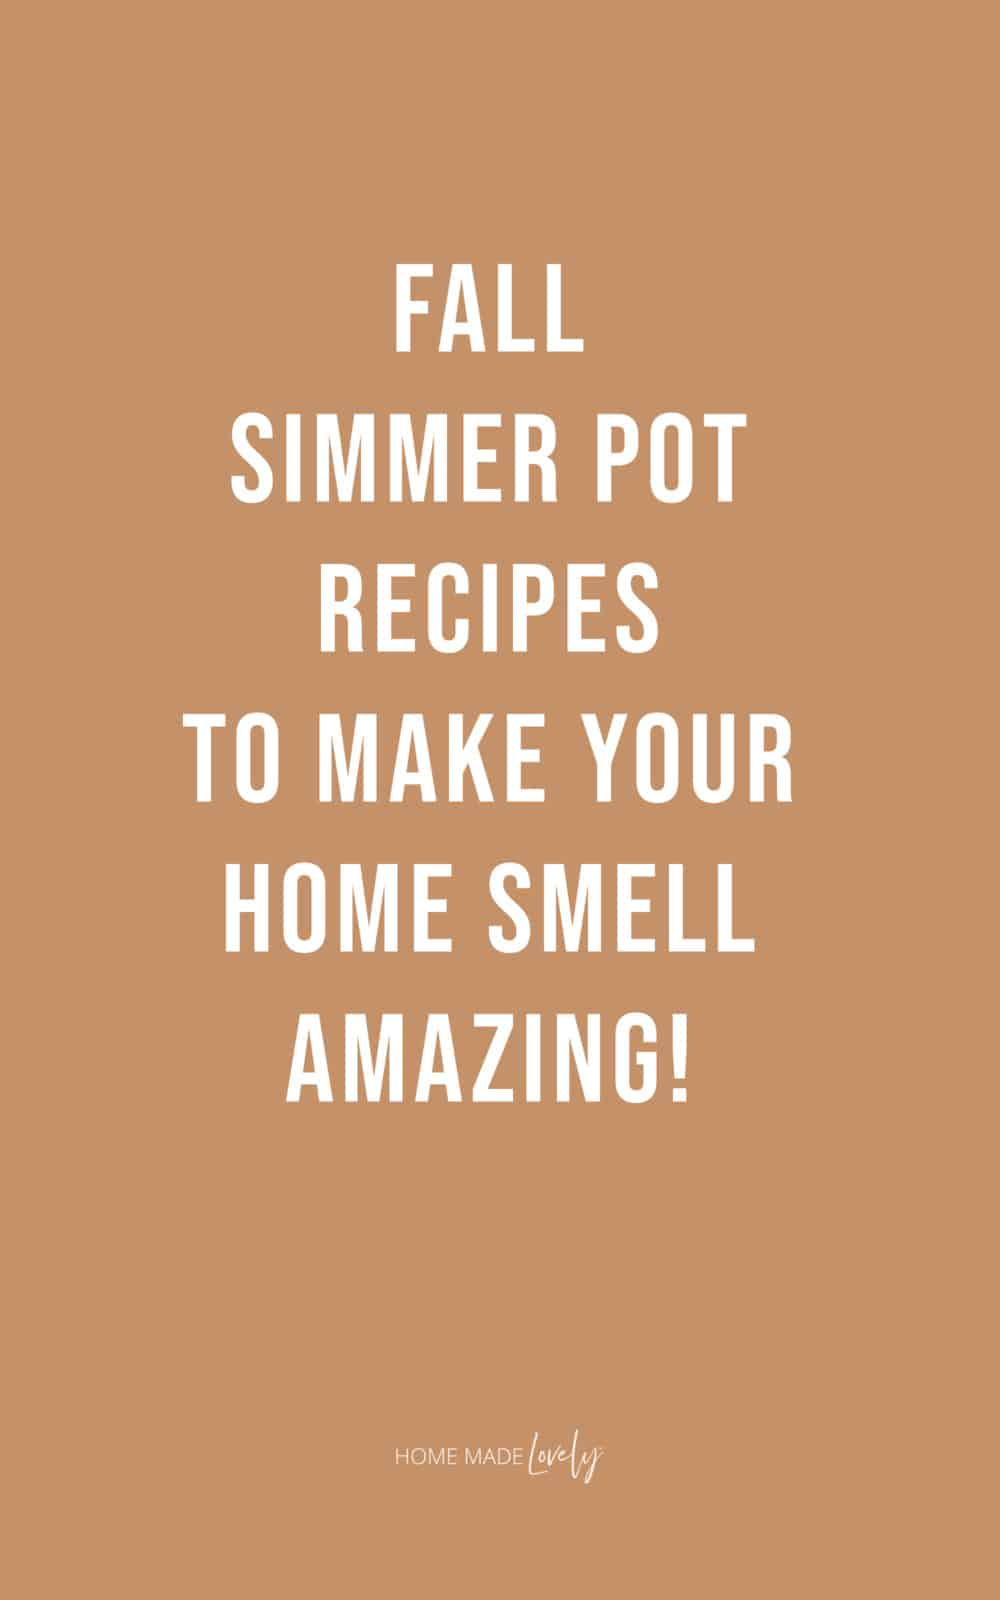 Fall Simmer Pot Recipes over light orange background